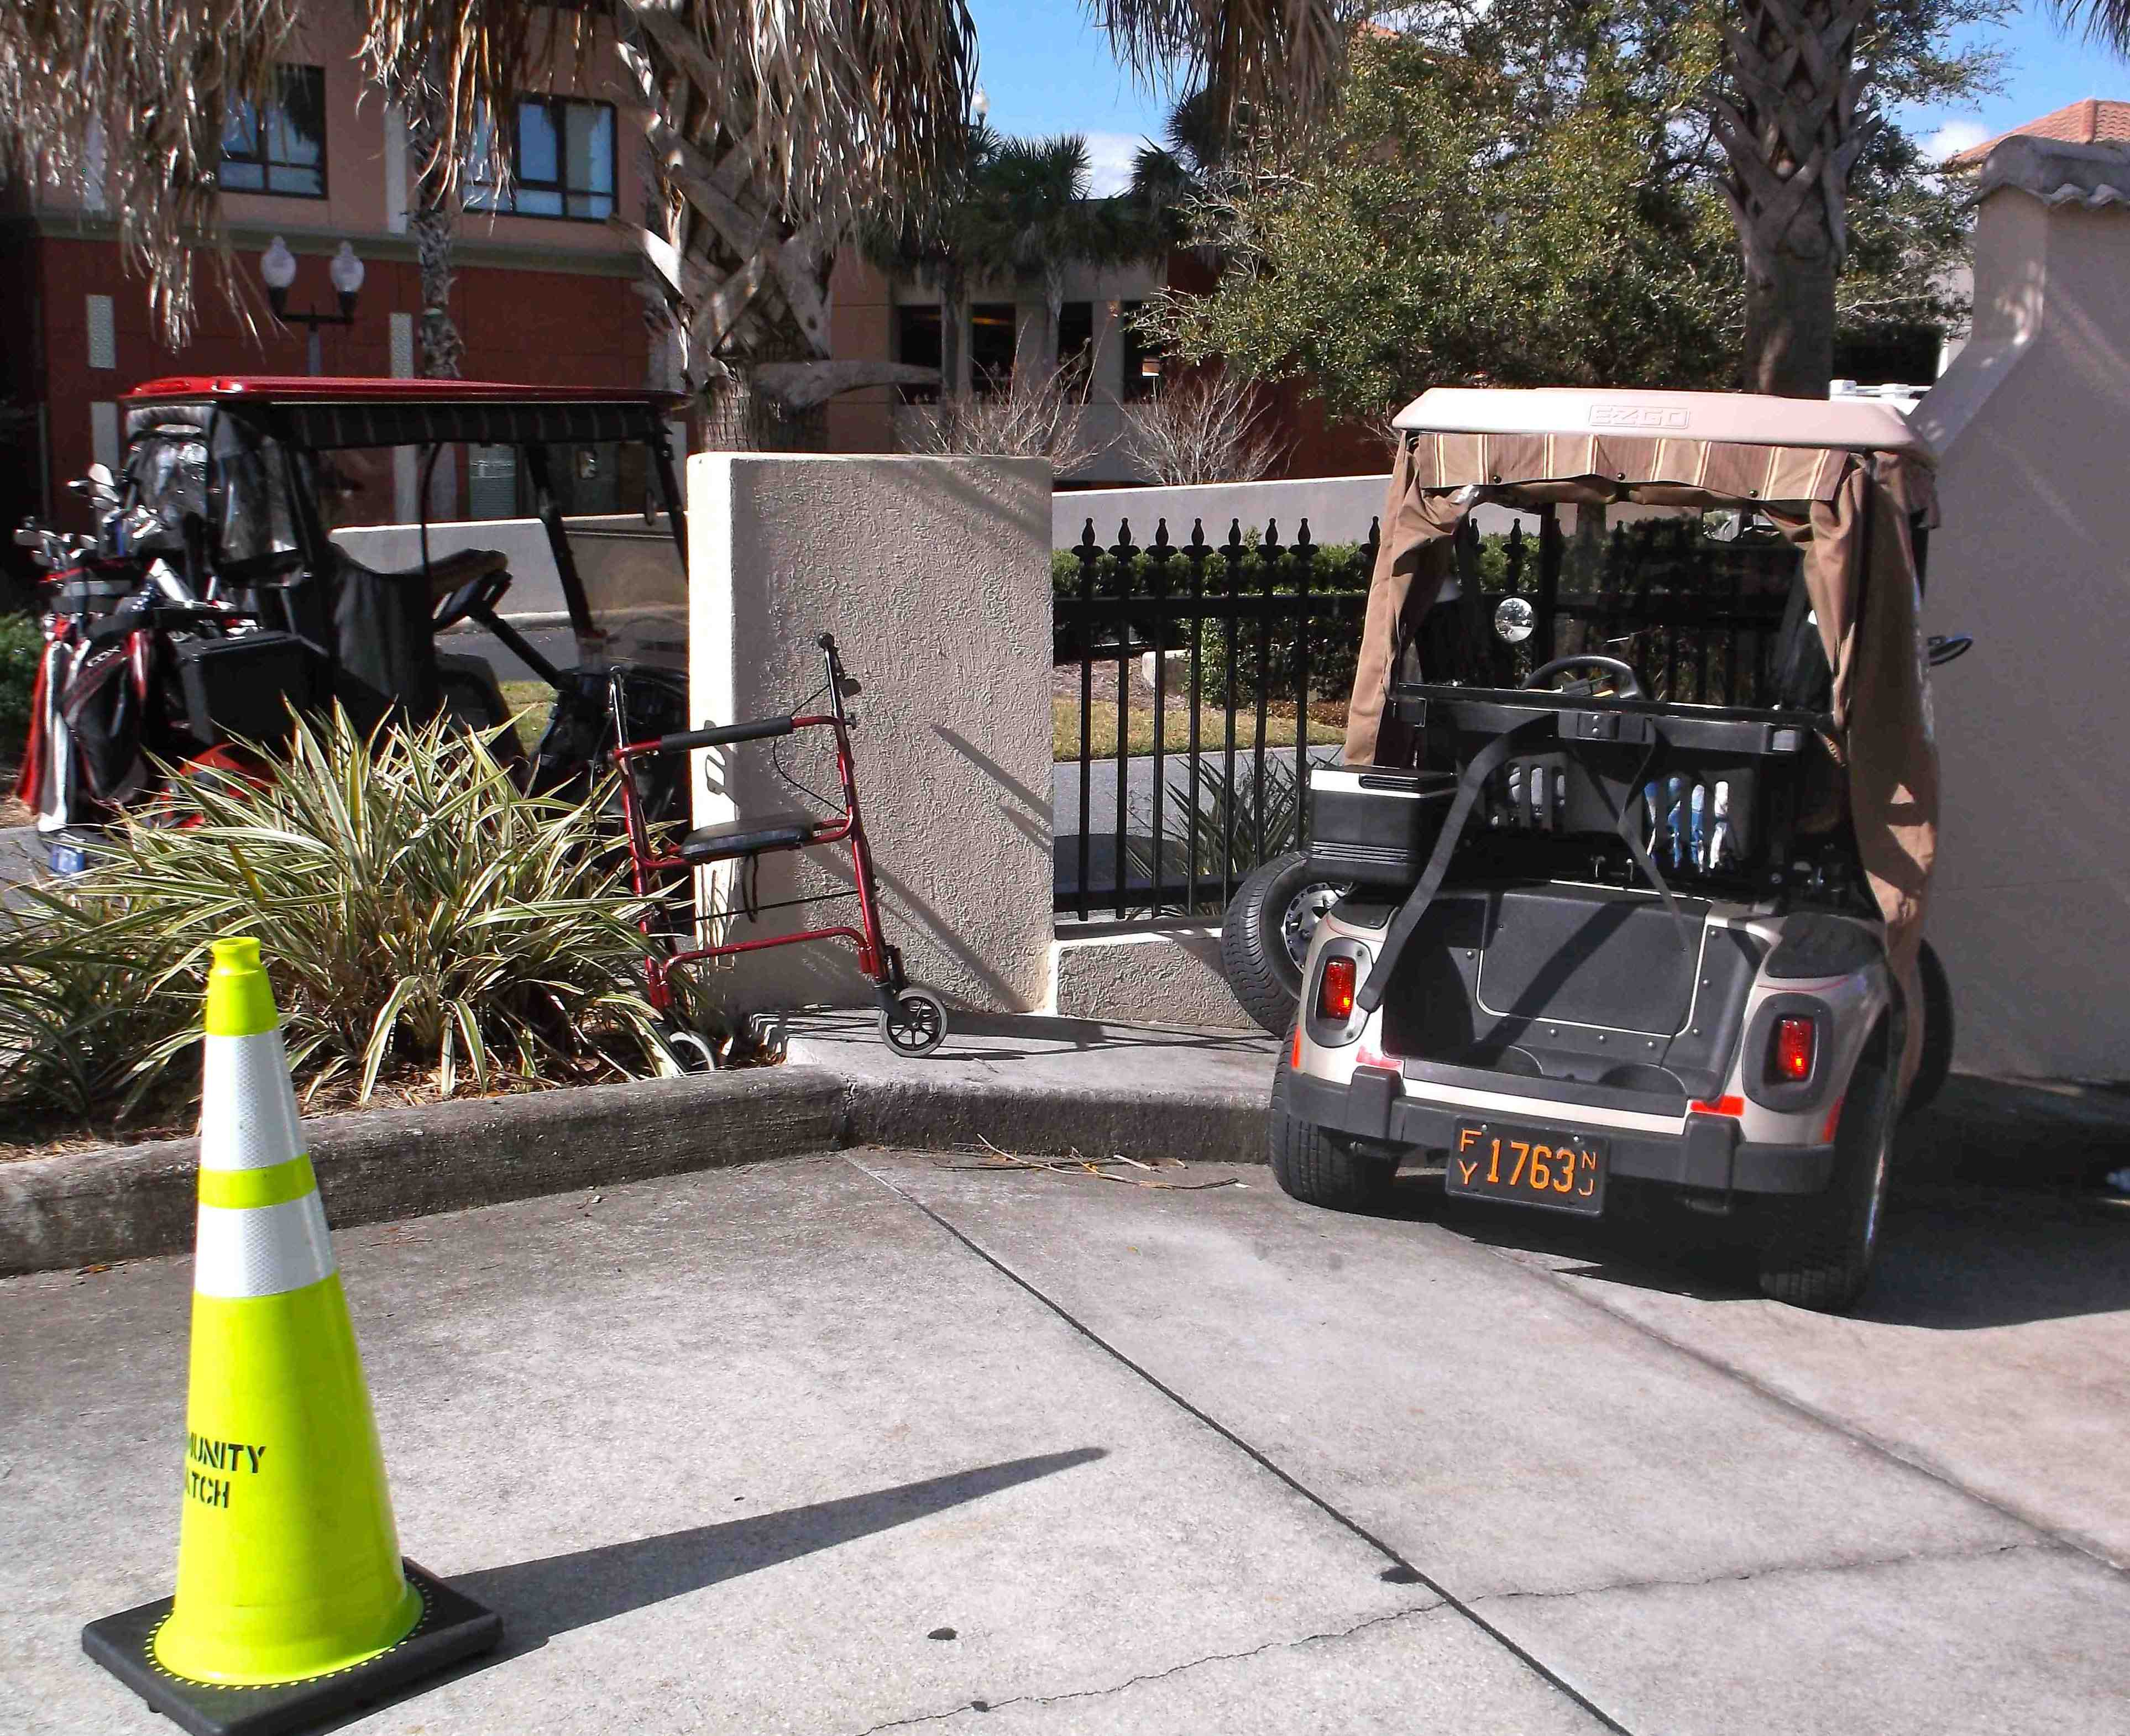 golf cart accidents three states of matter diagram fhp report indicates 81 year old villager ejected from